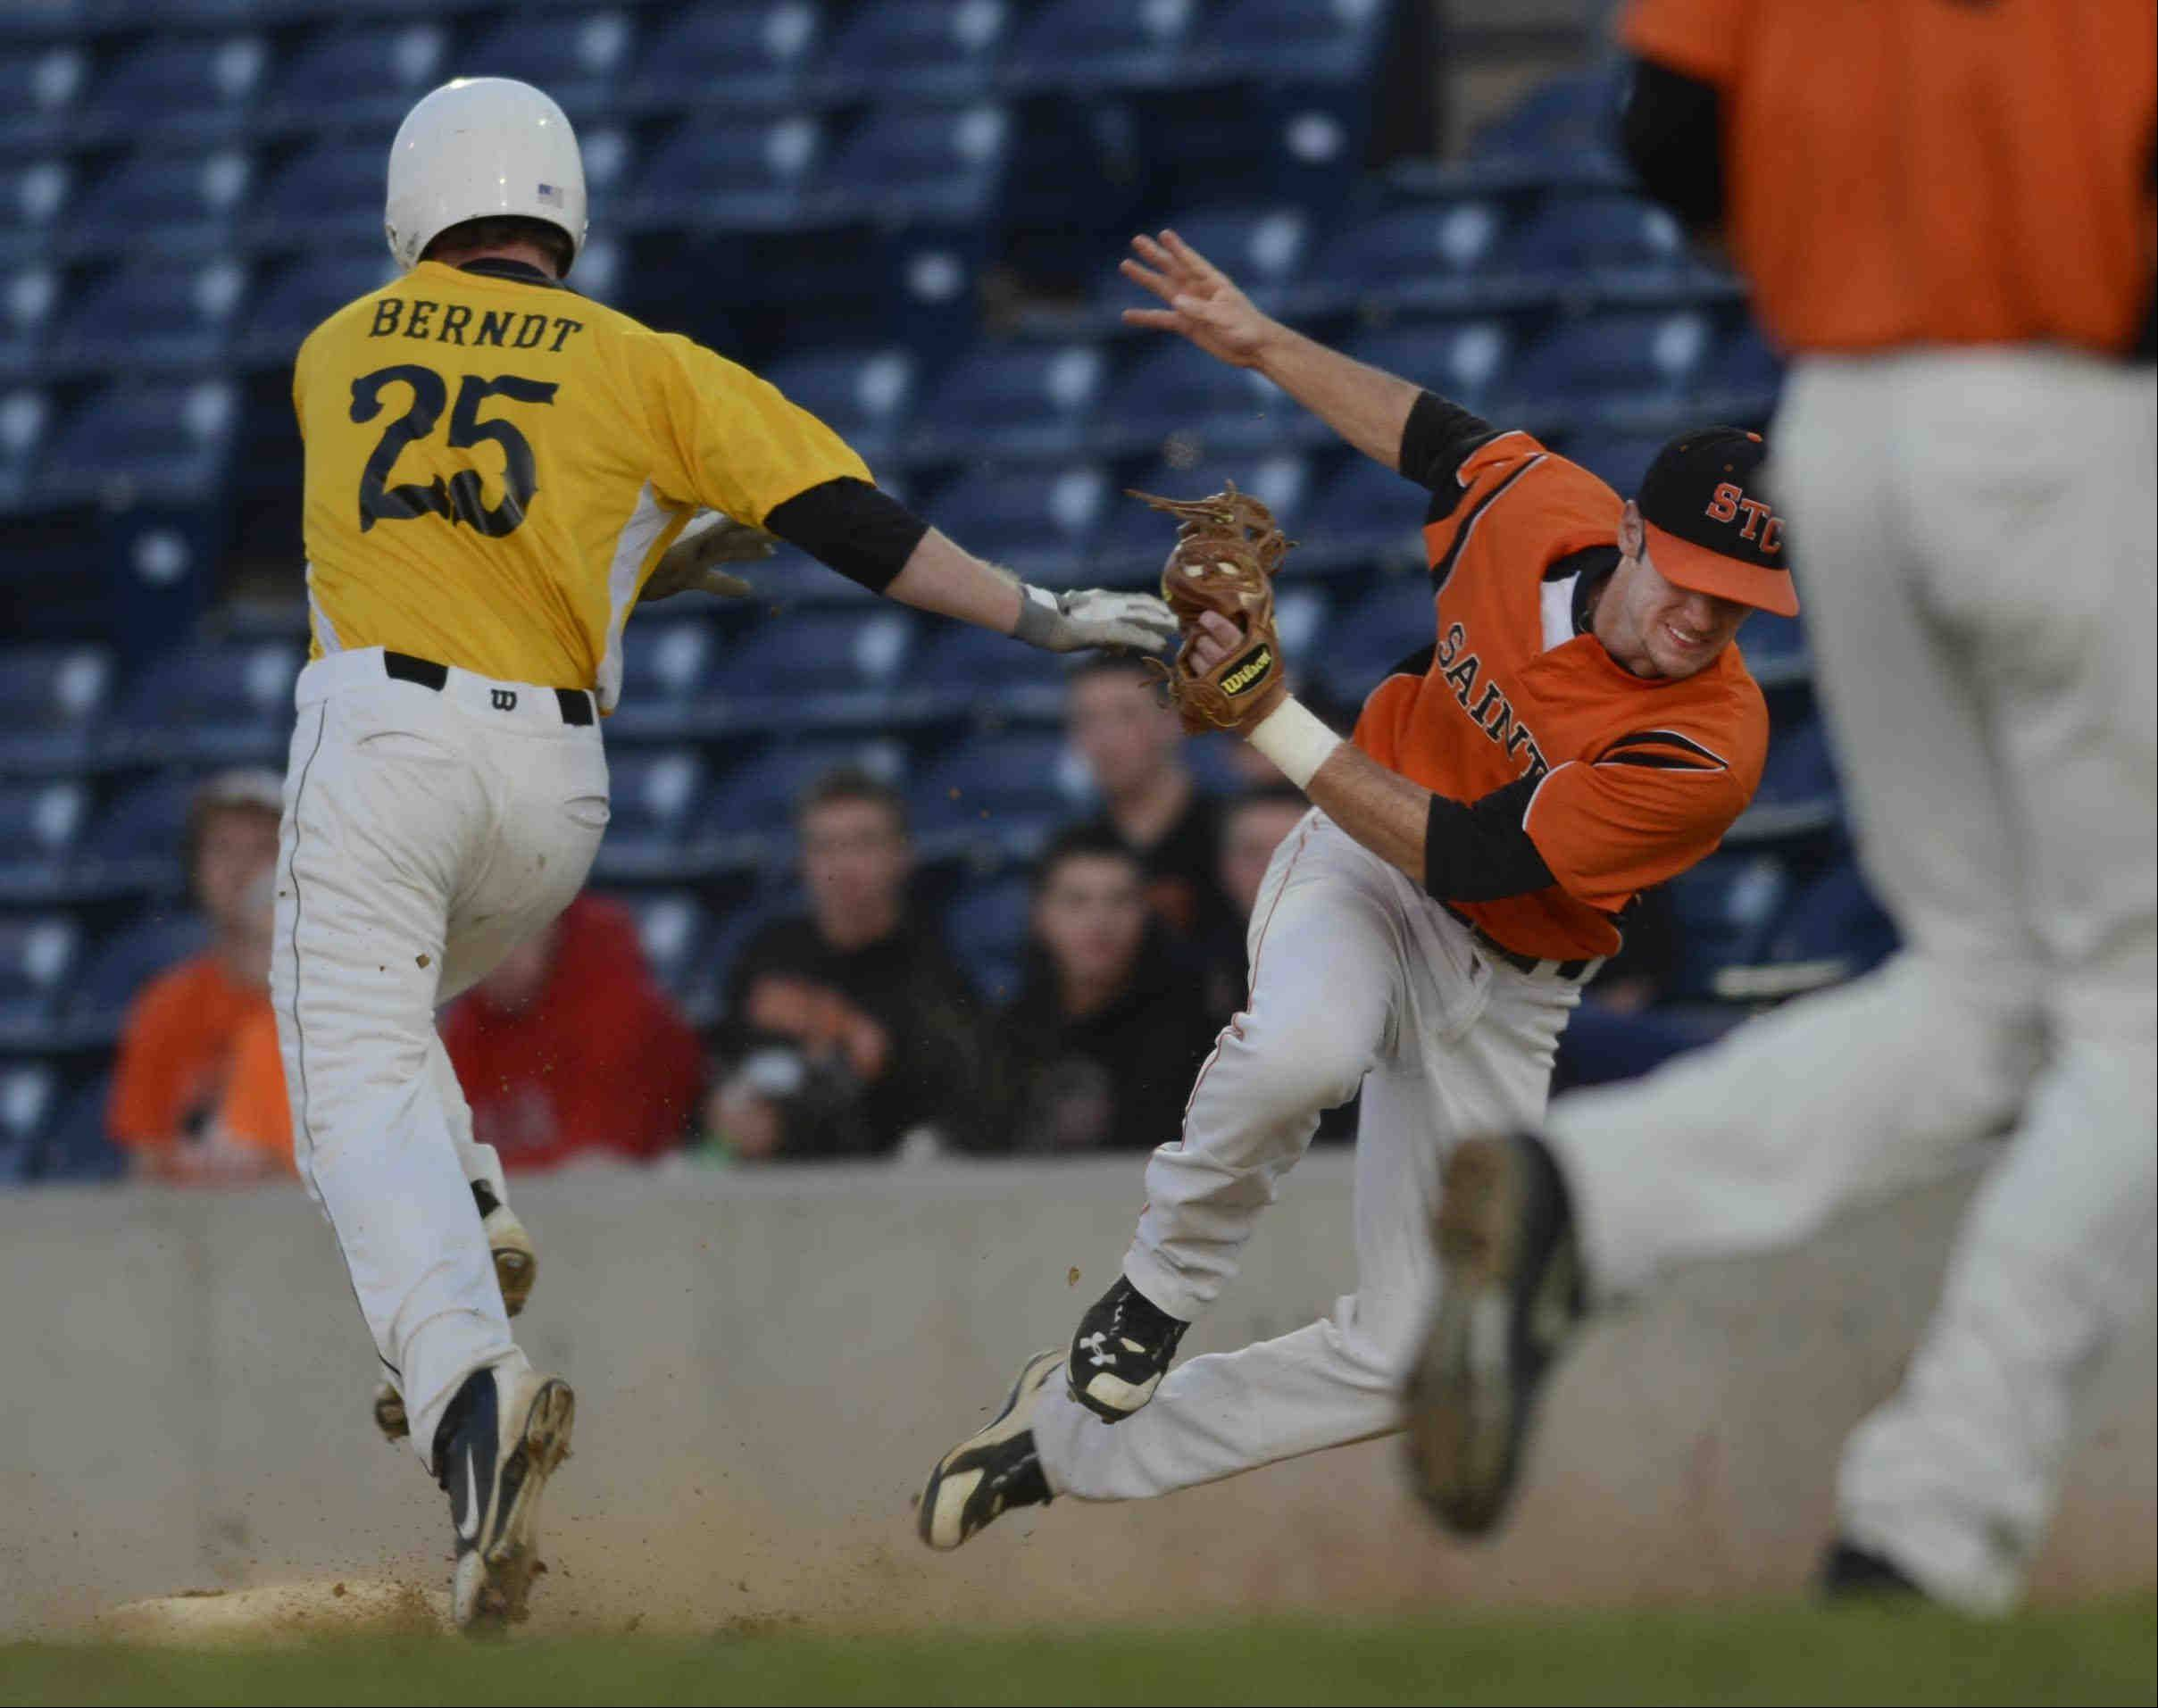 Jacobs' Jon Berndt collides with St. Charles East first baseman Jack Dellostritto Monday in the Class 4A supersectional at RiverHawks Stadium in Rockford. He was out on the bunt.